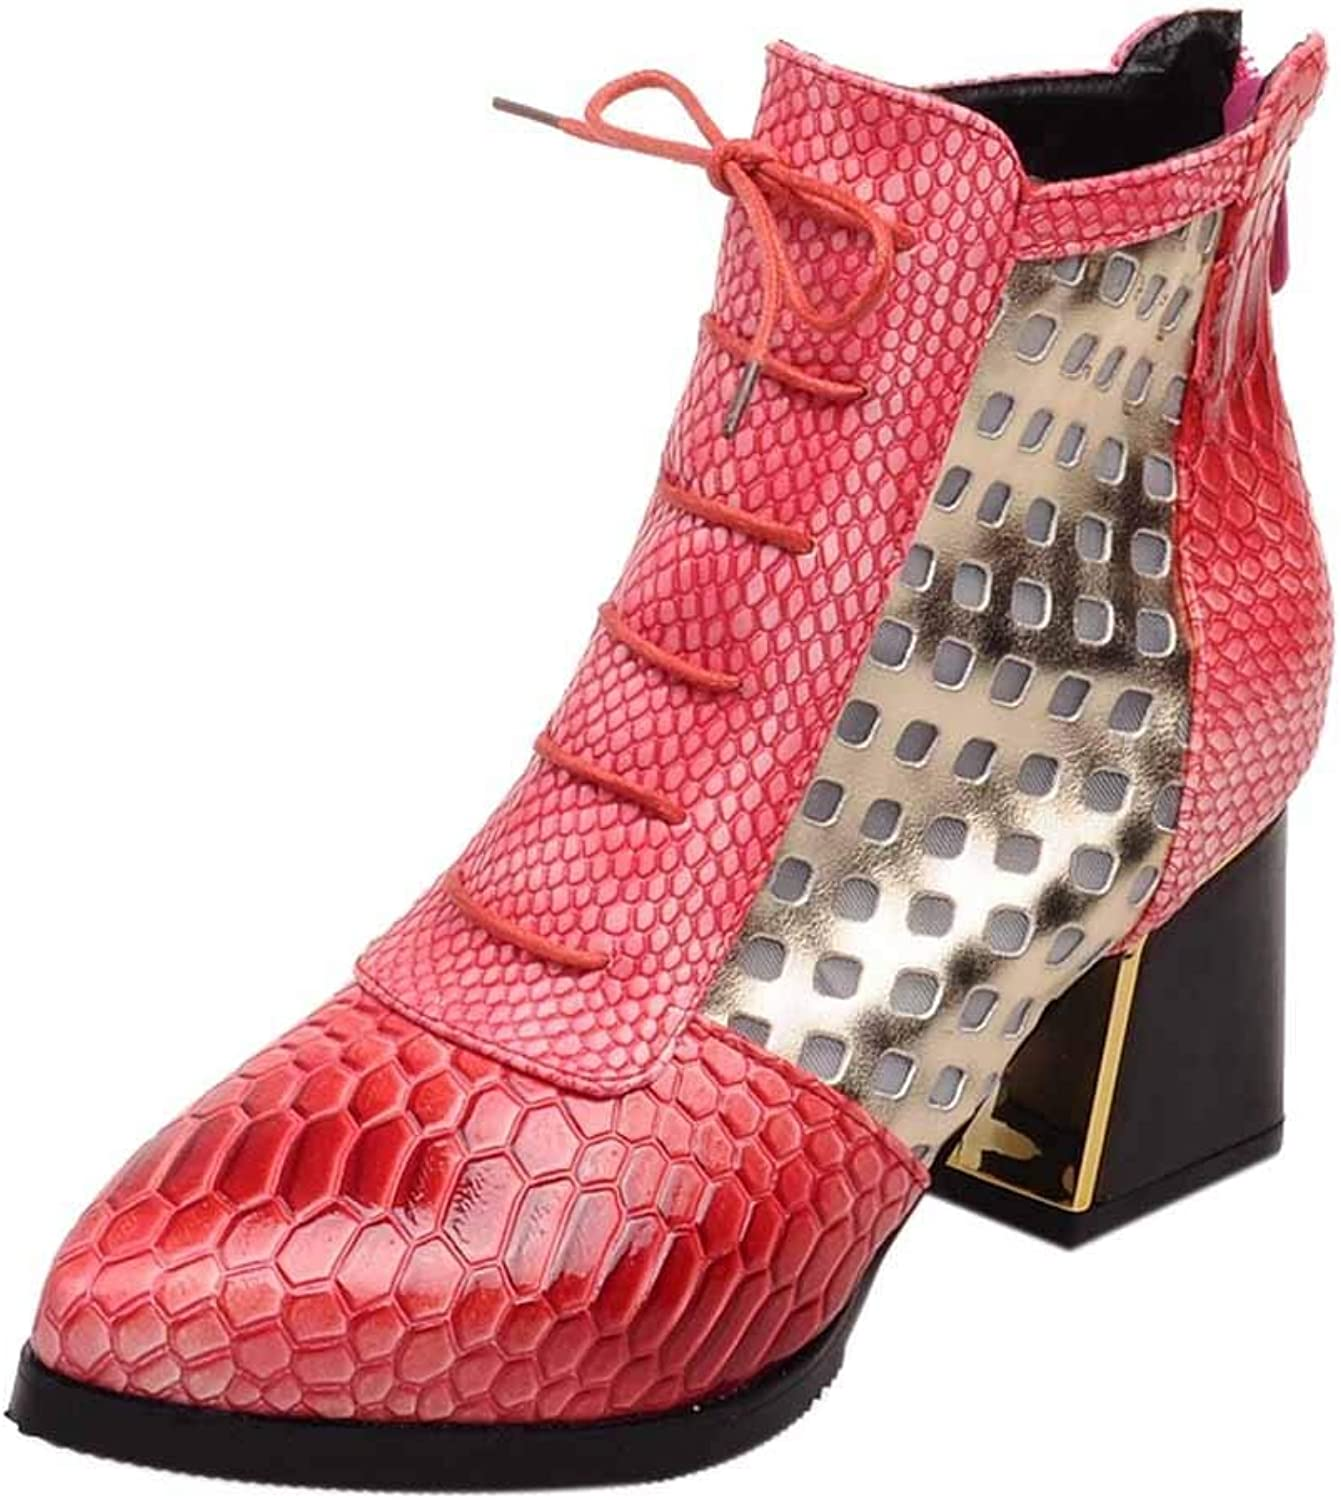 A-LING Ladies Snakeskin Print Women's Cool Sequin Embroidery Pointed Ankle Boots